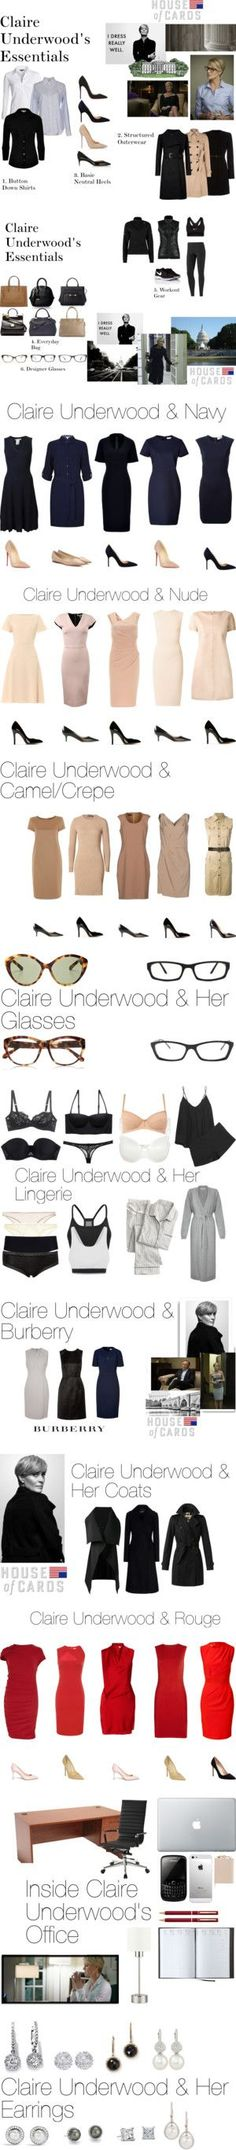 Claire Underwood's Wardrobe by oliviapope411 on Polyvore featuring NIC+ZOE…